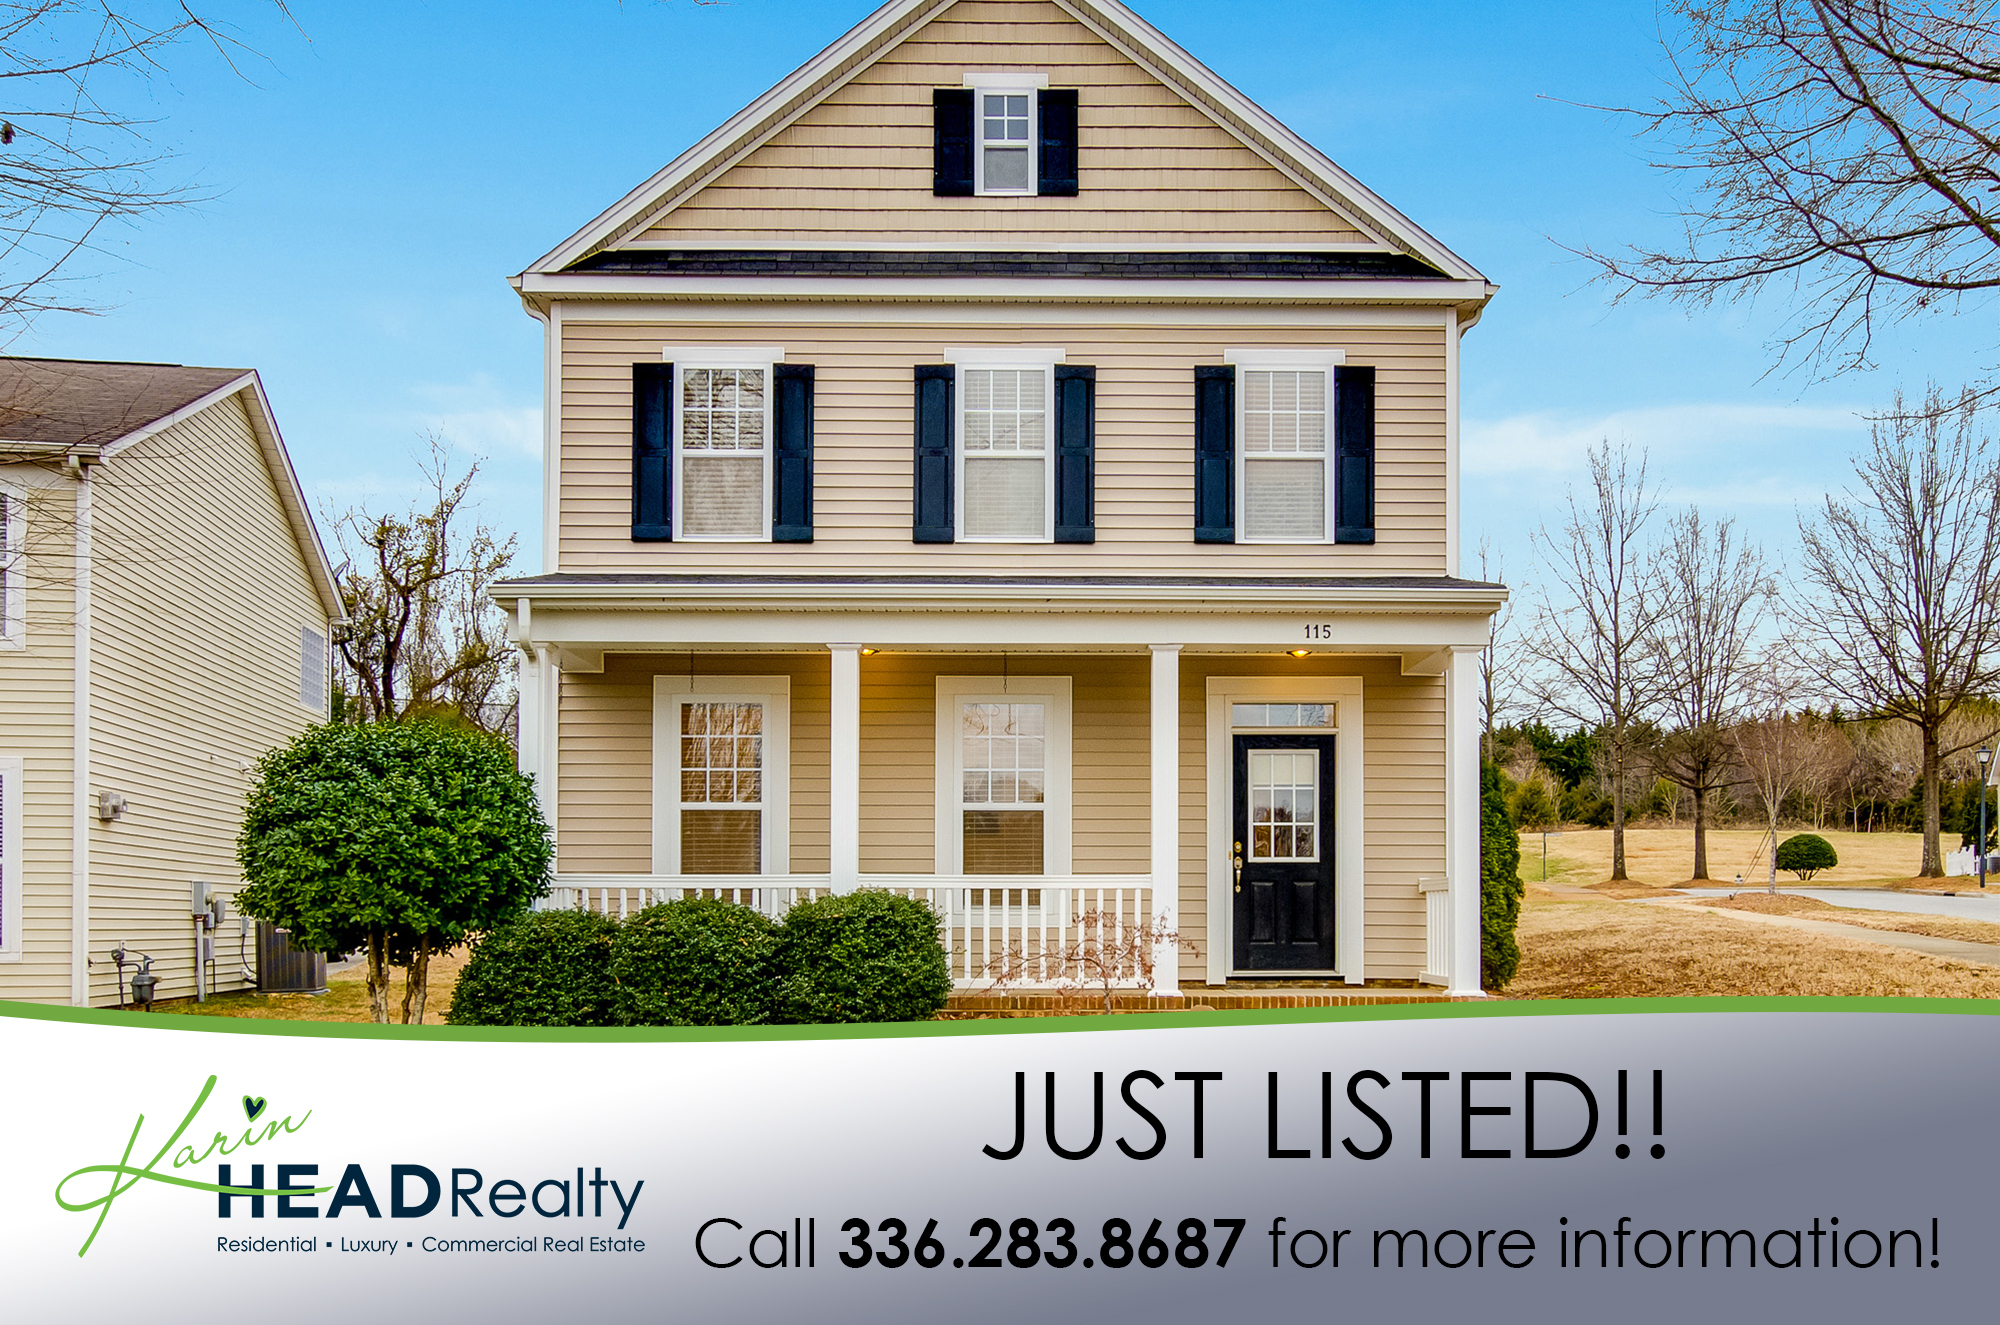 155 Town Park_Just Listed.jpg